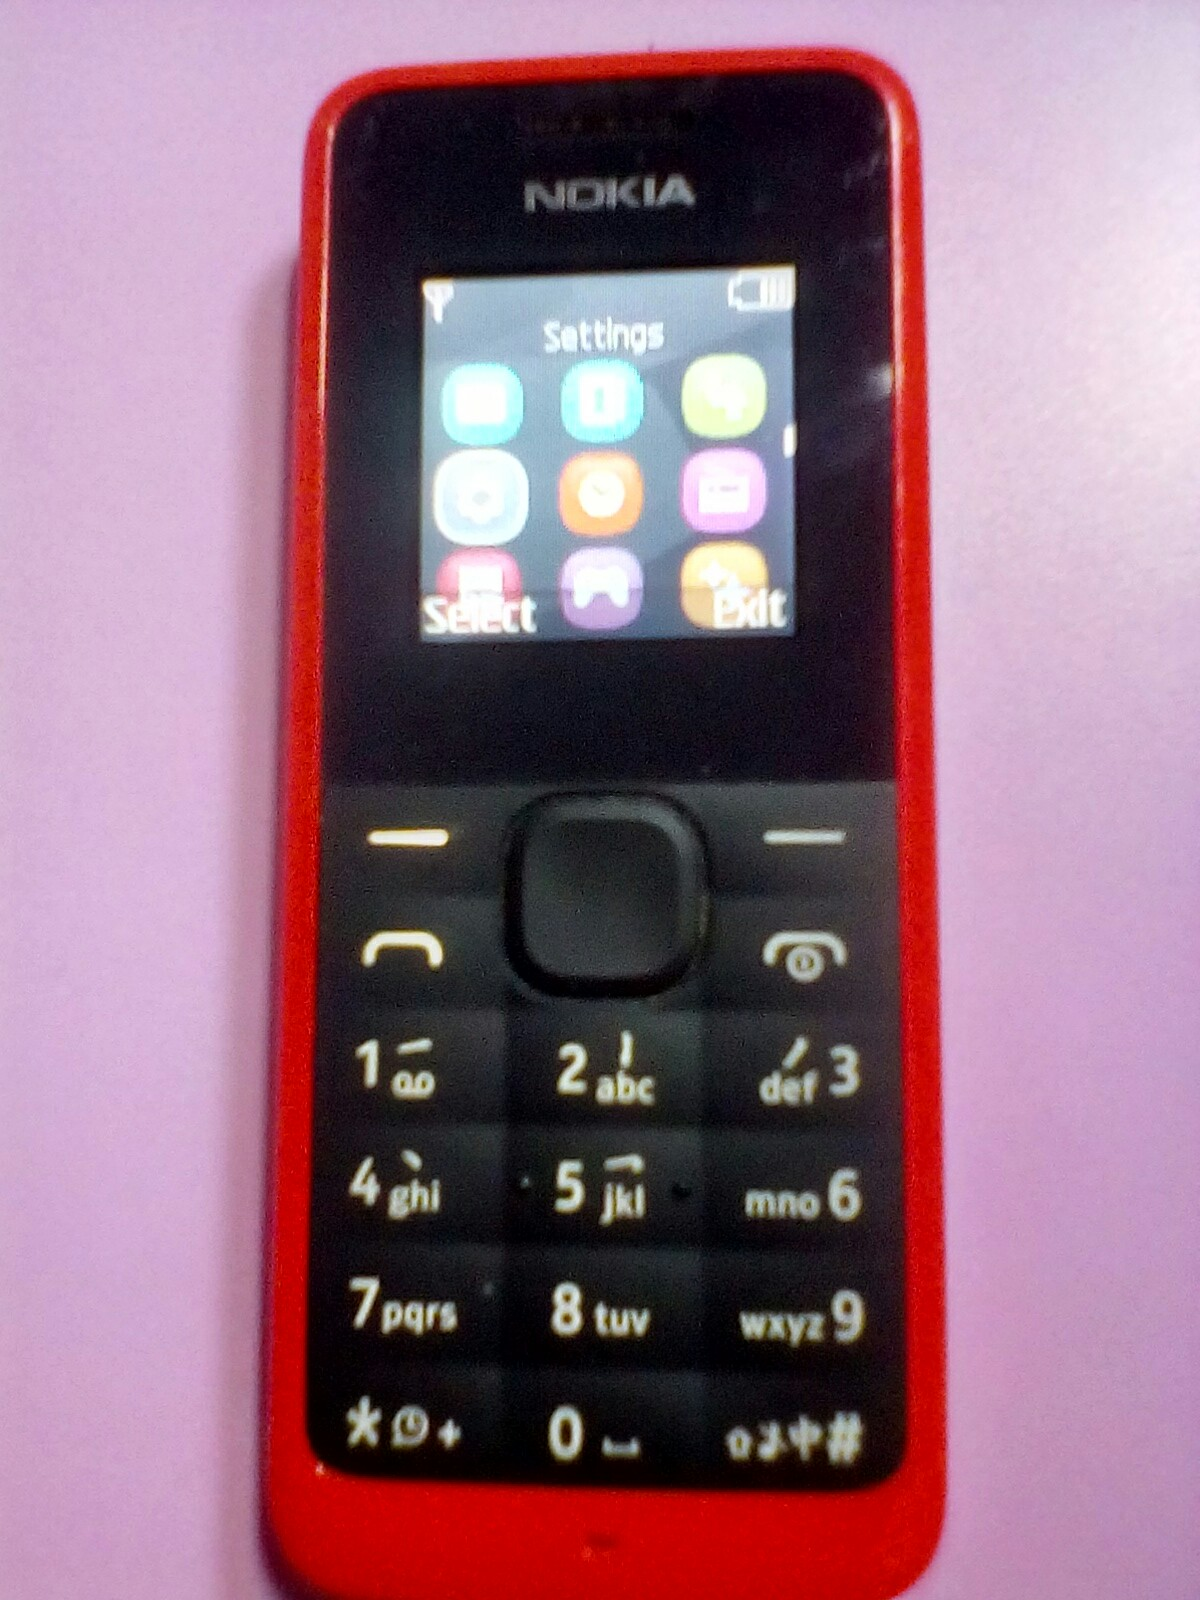 Nokia Phone Carouween40 Mobile Phones Tablets Others On Carousell Casing 2630